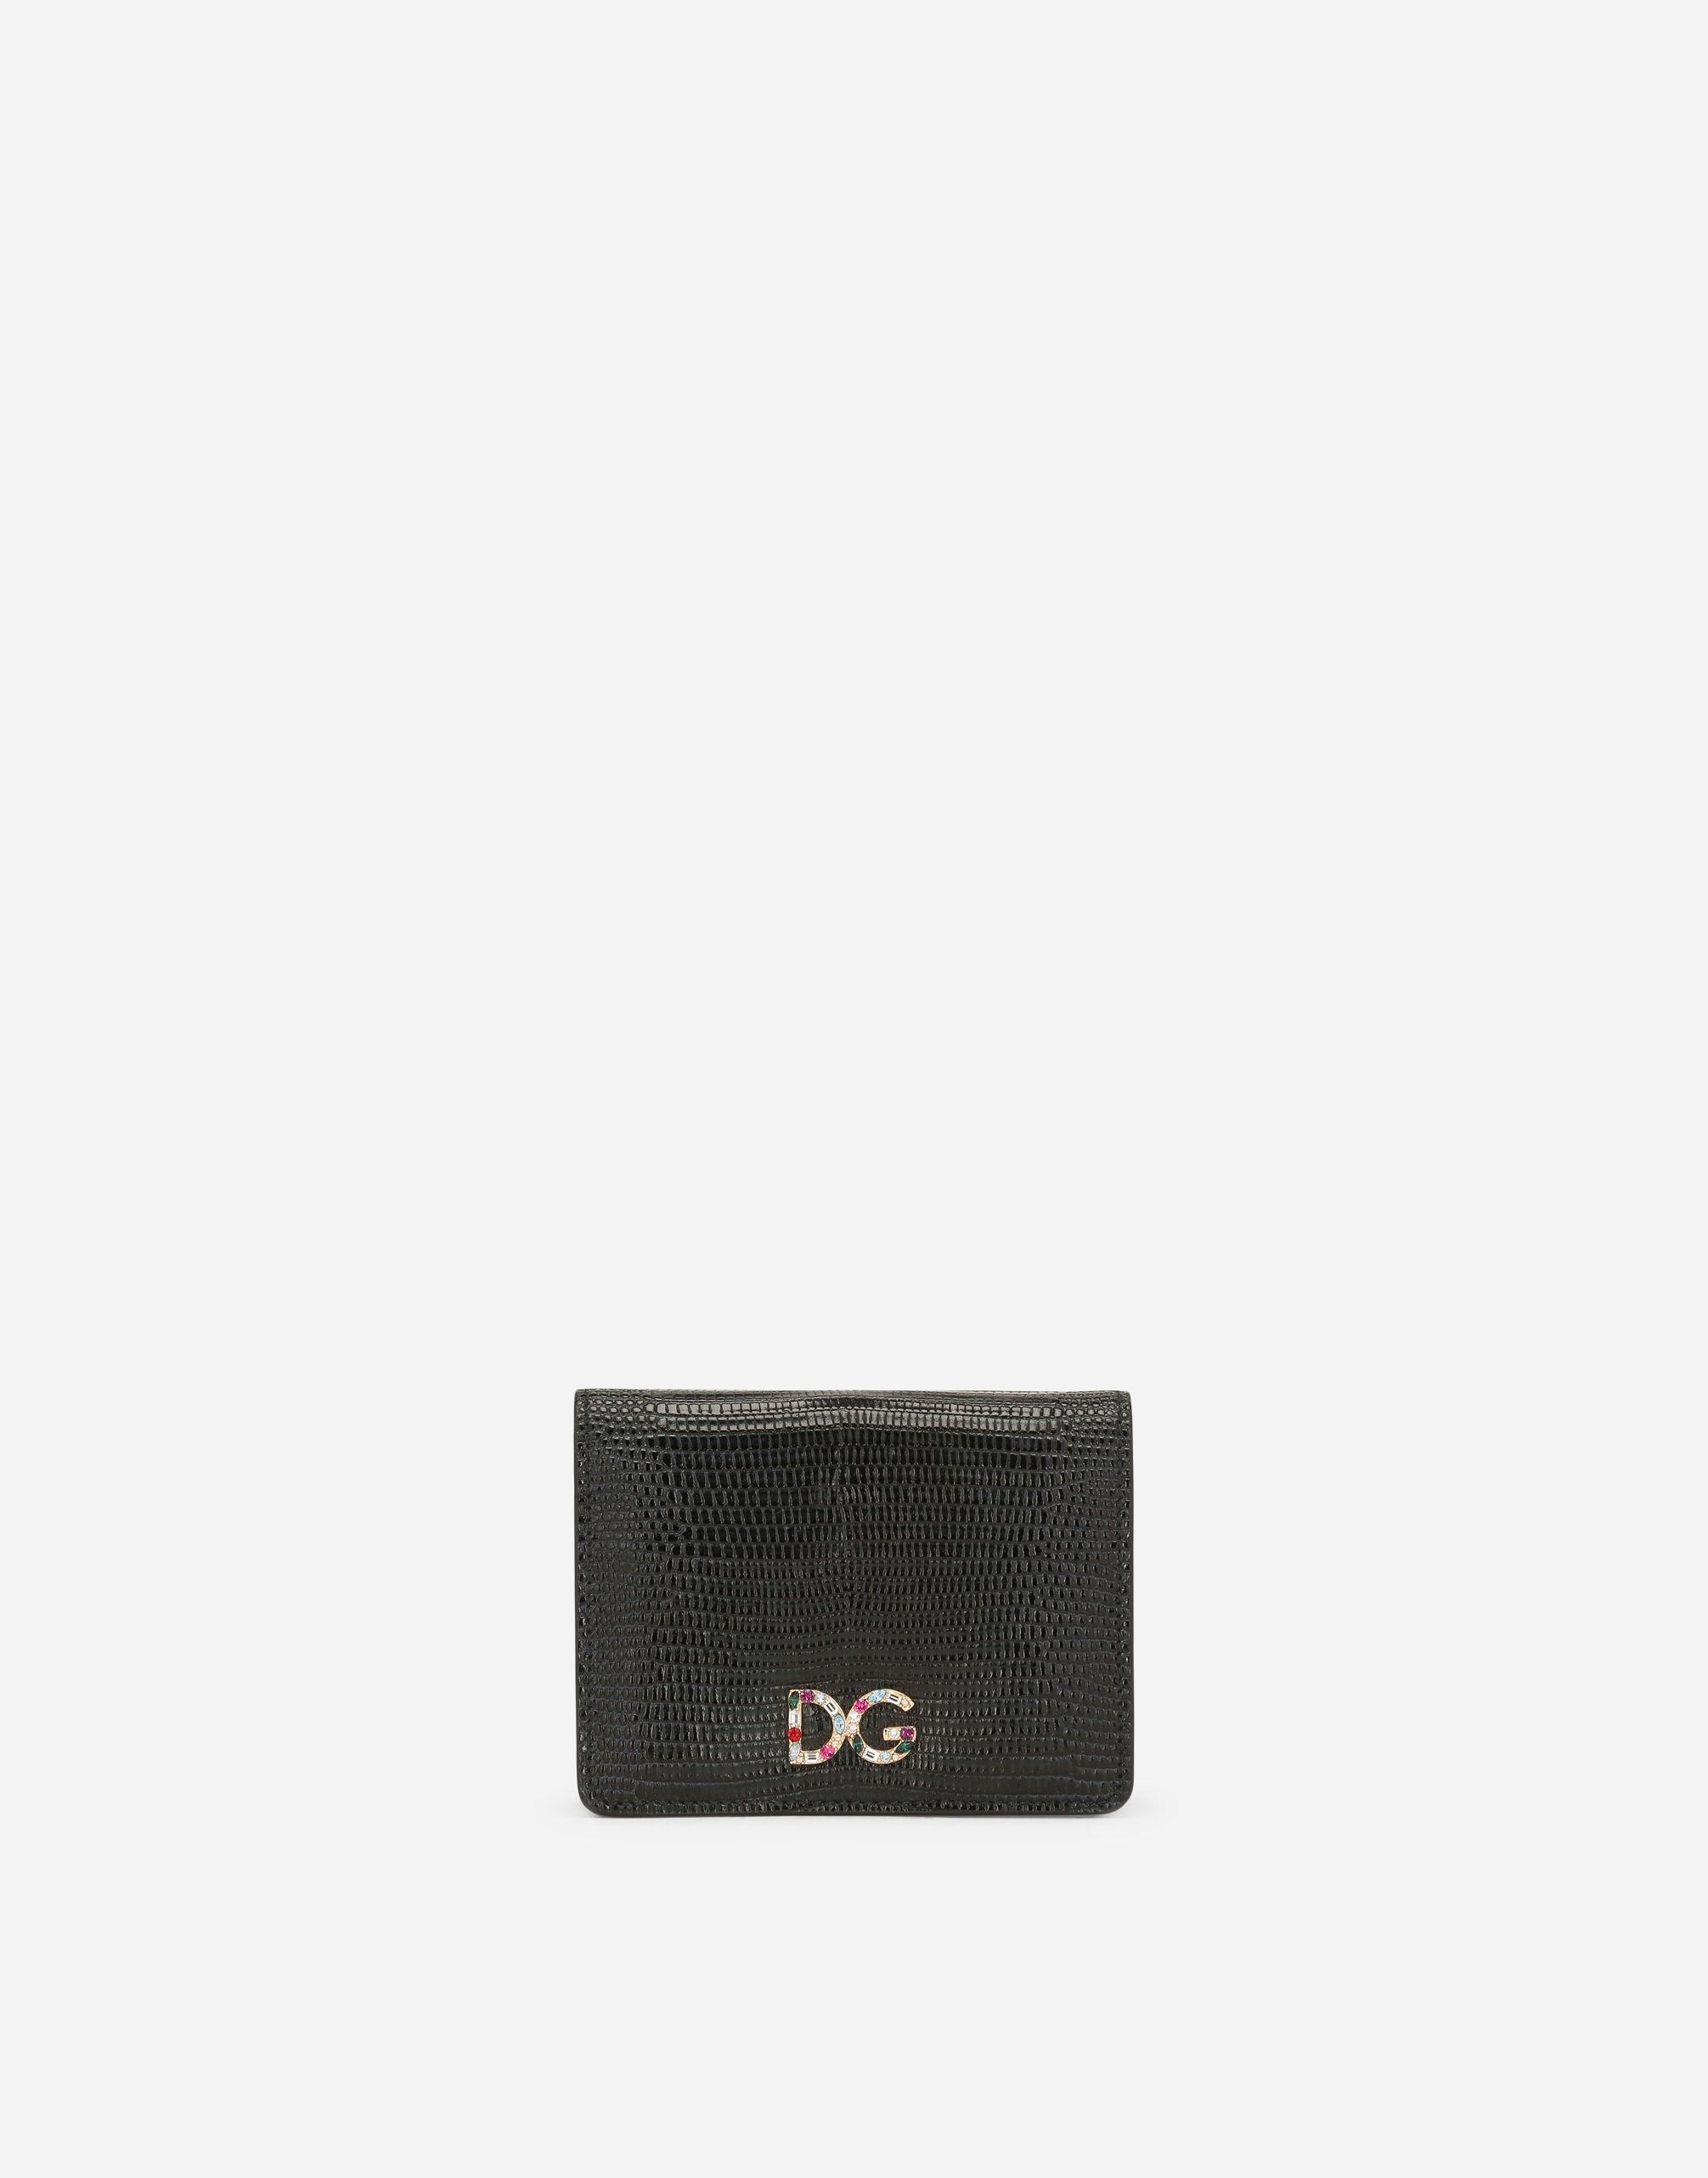 Small continental wallet in Dauphine calfskin with rhinestone-detailed DG logo